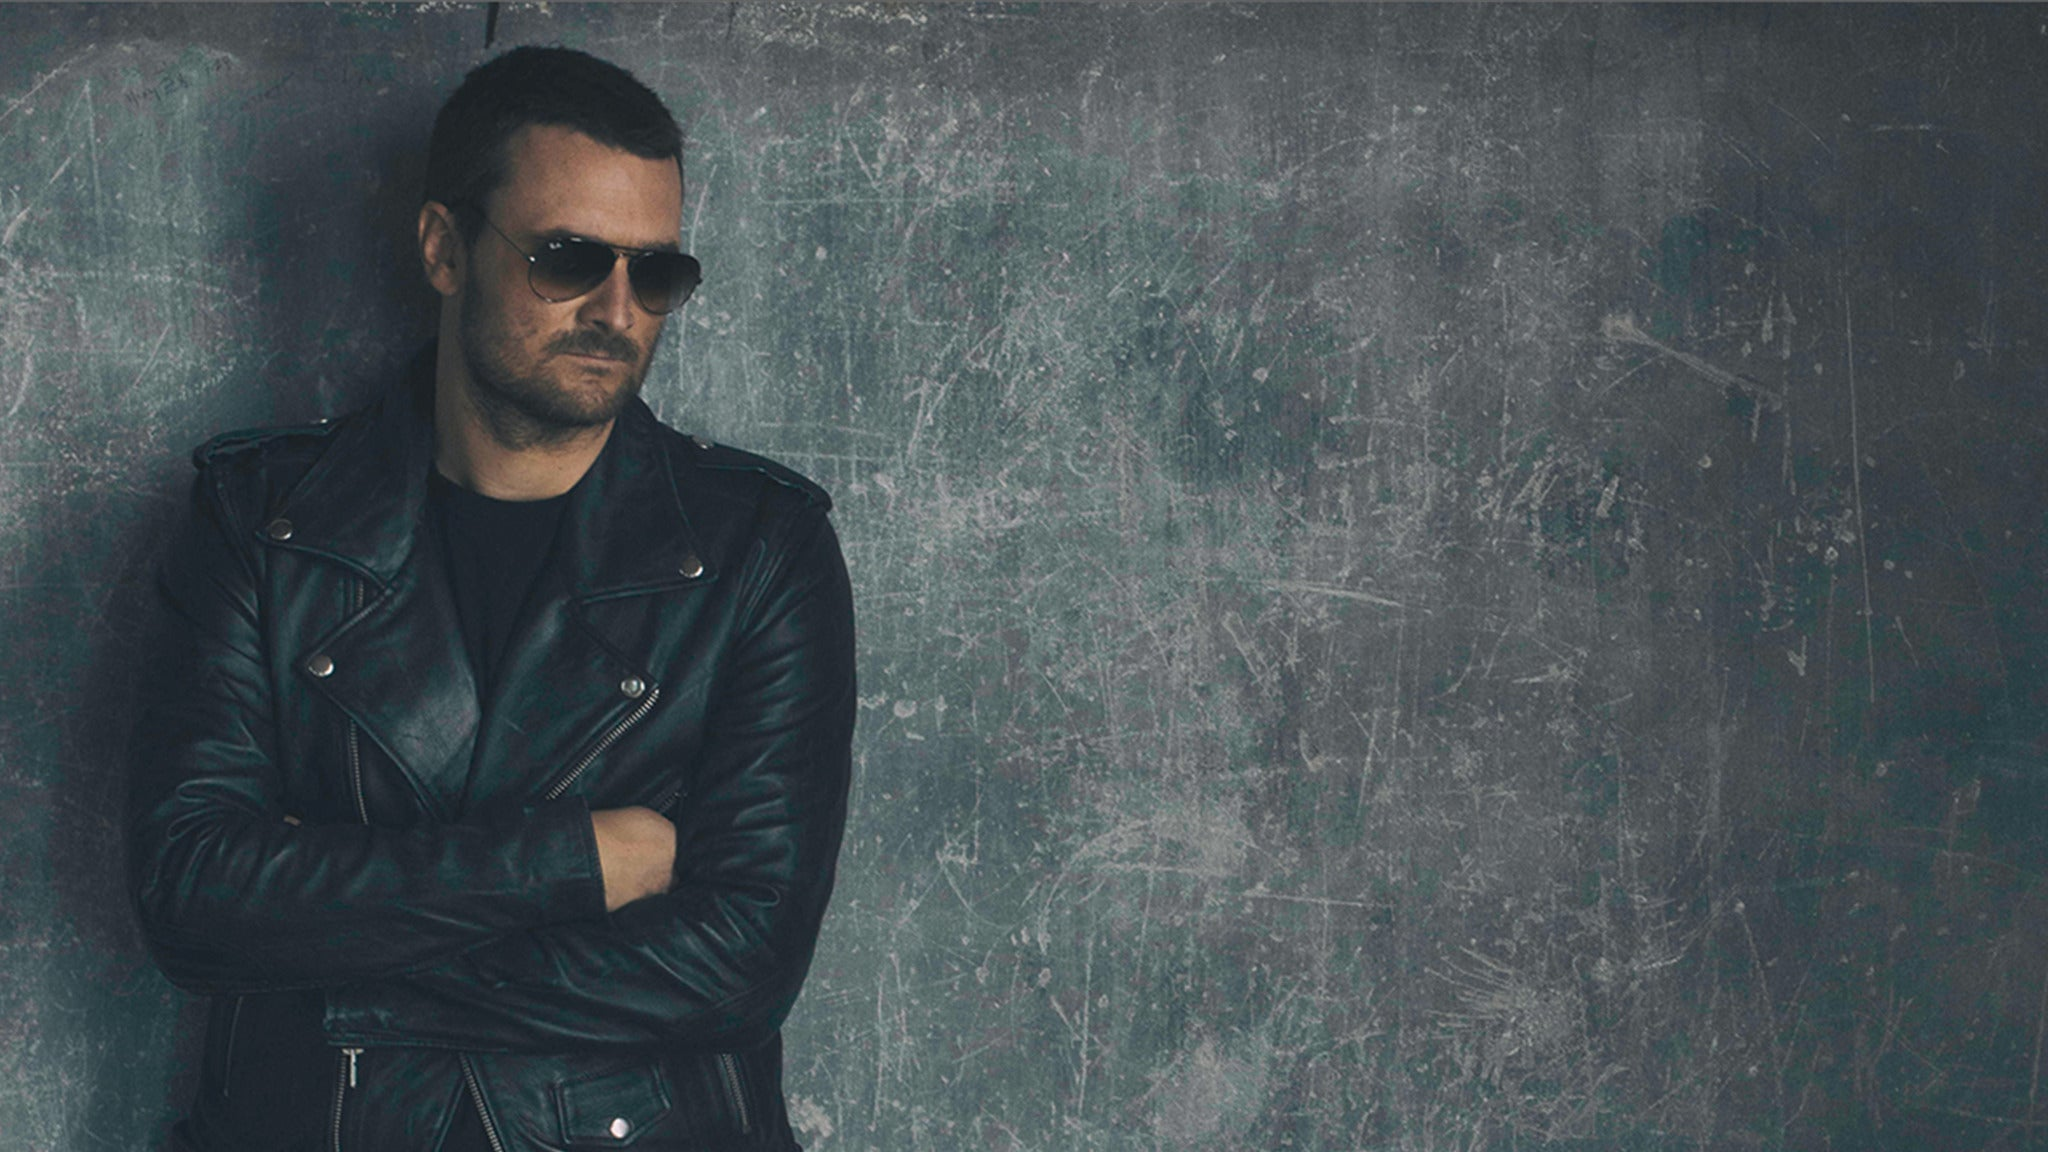 Eric Church - Holdin' My Own Tour at Verizon Arena